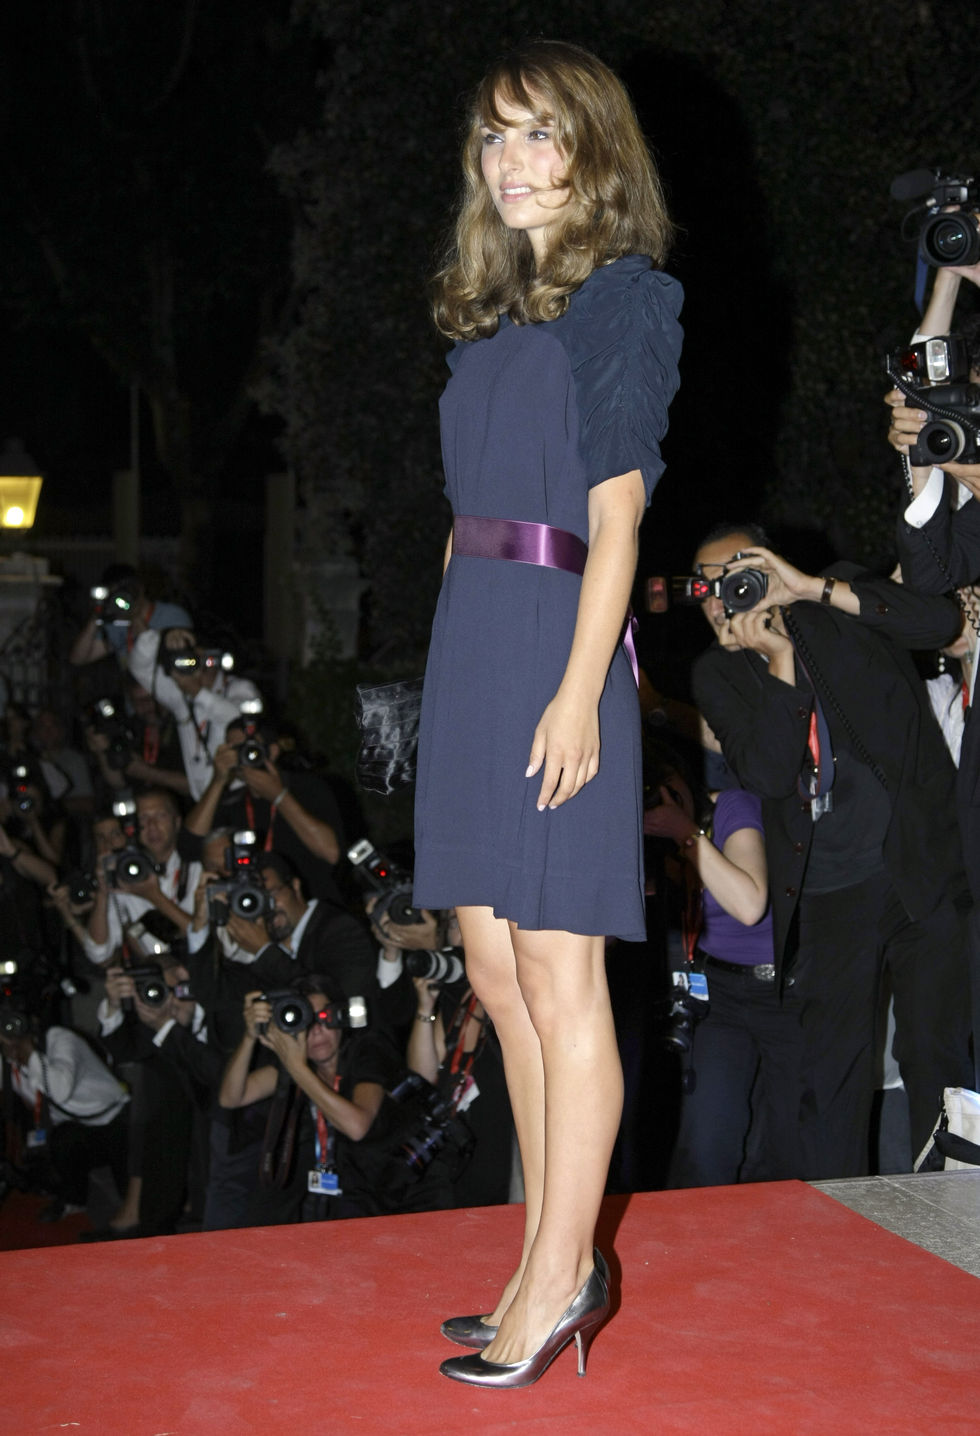 natalie-portman-cinema-diamond-award-ceremony-in-venice-01